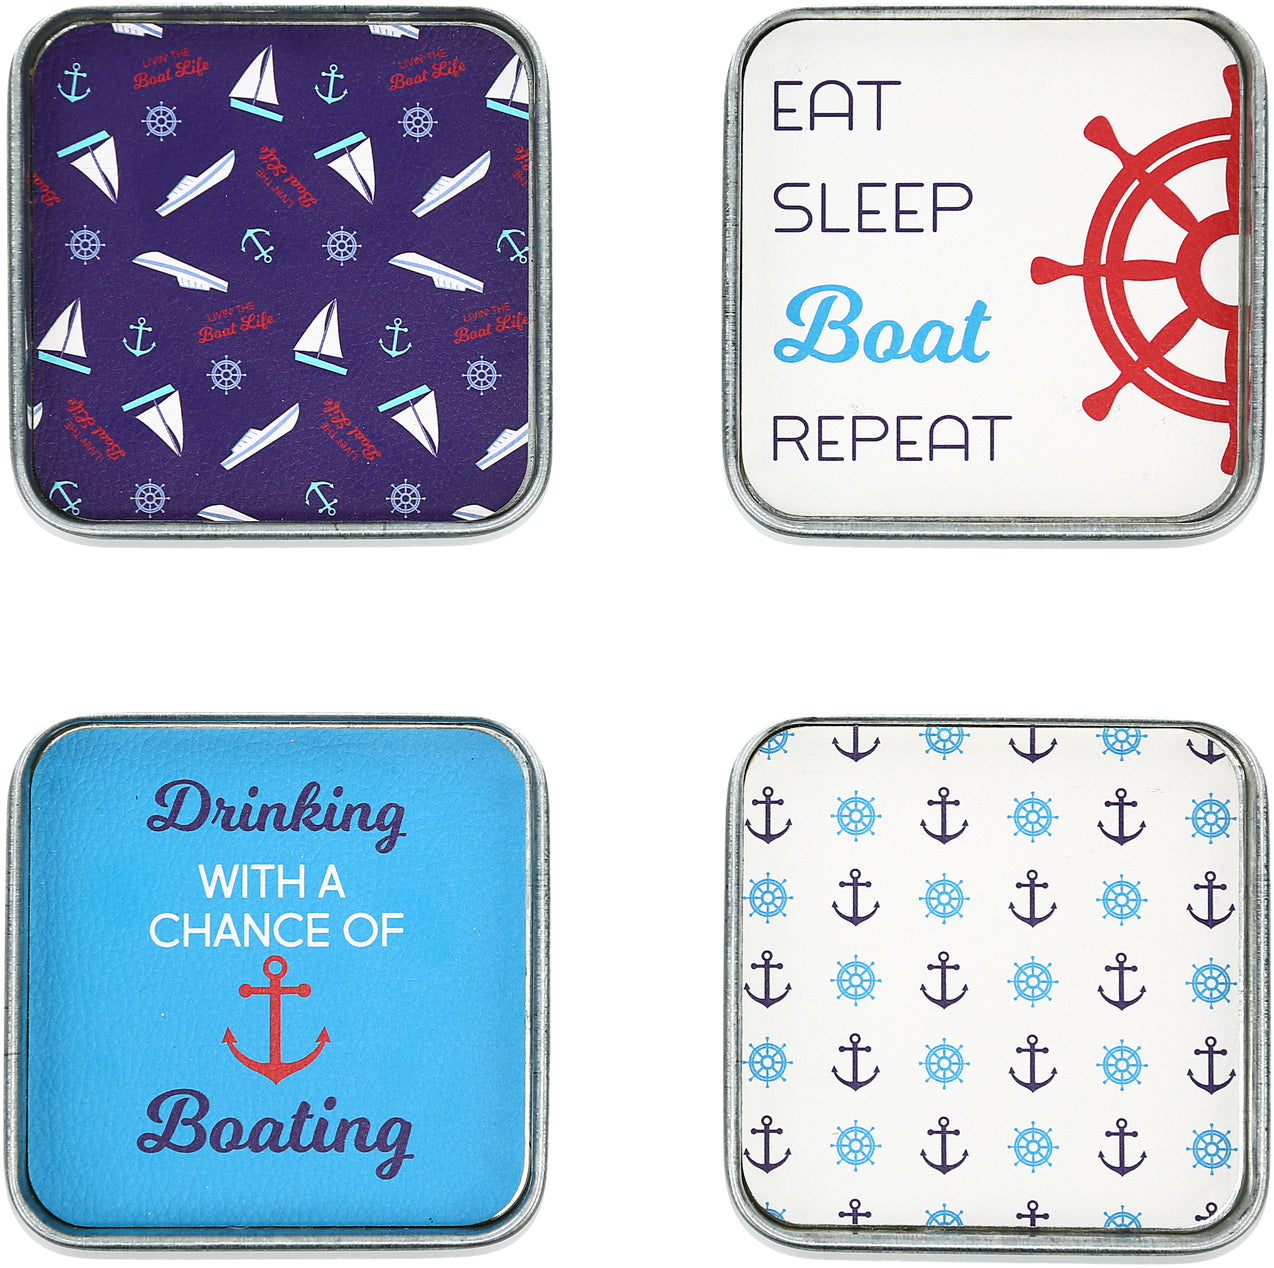 Coaster Set Boating